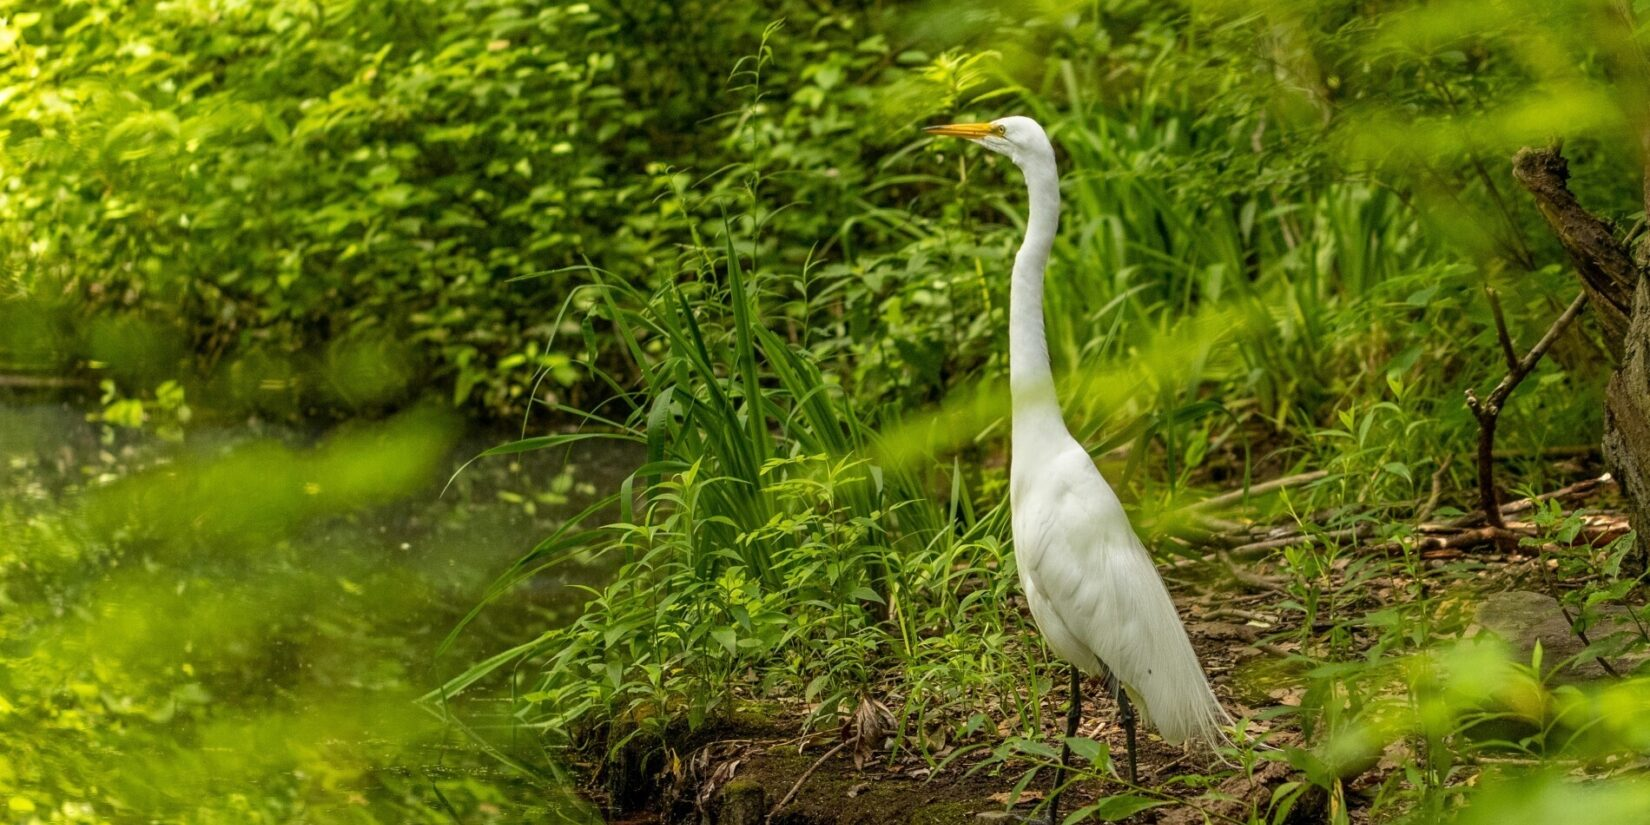 An egret stands on the banks of the Loch, surrounded by the lush green landscape